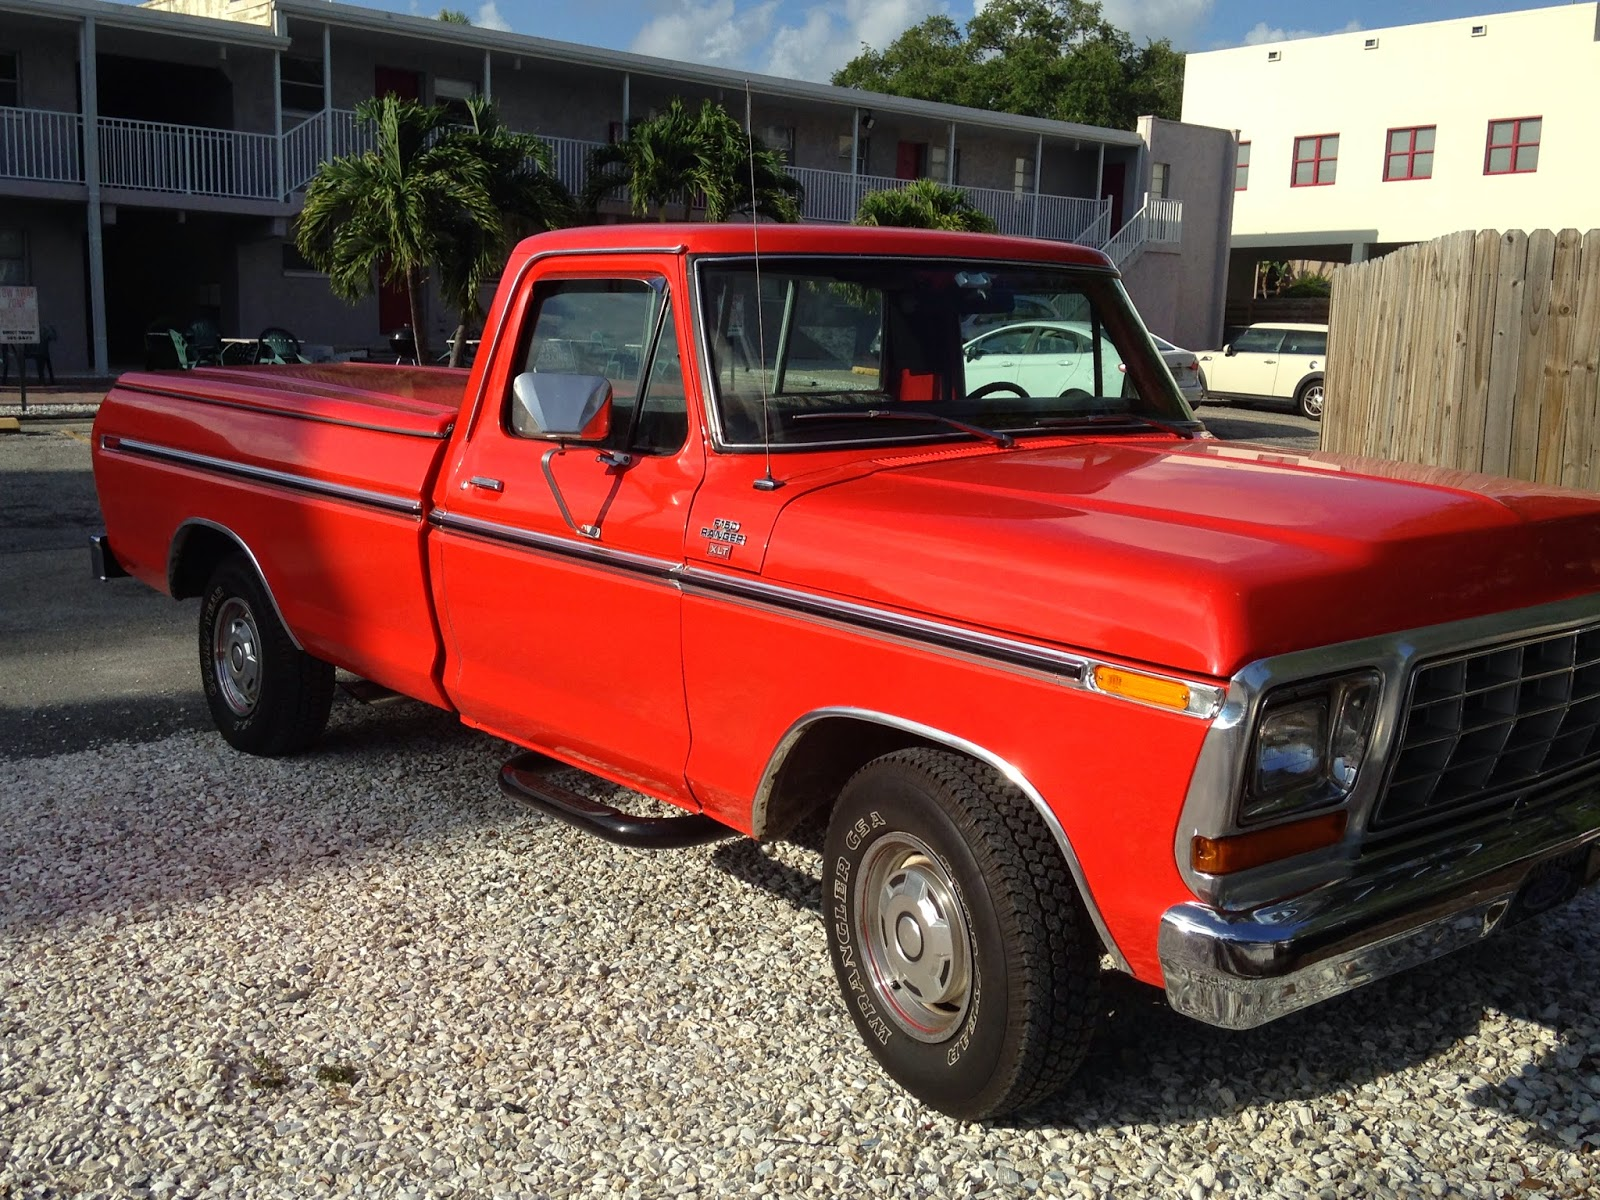 Today We Have A Pristine Example Of The 6th Generation Ford F Series Pickup Truck Line This Model Is 1978 150 Ranger Xlt One